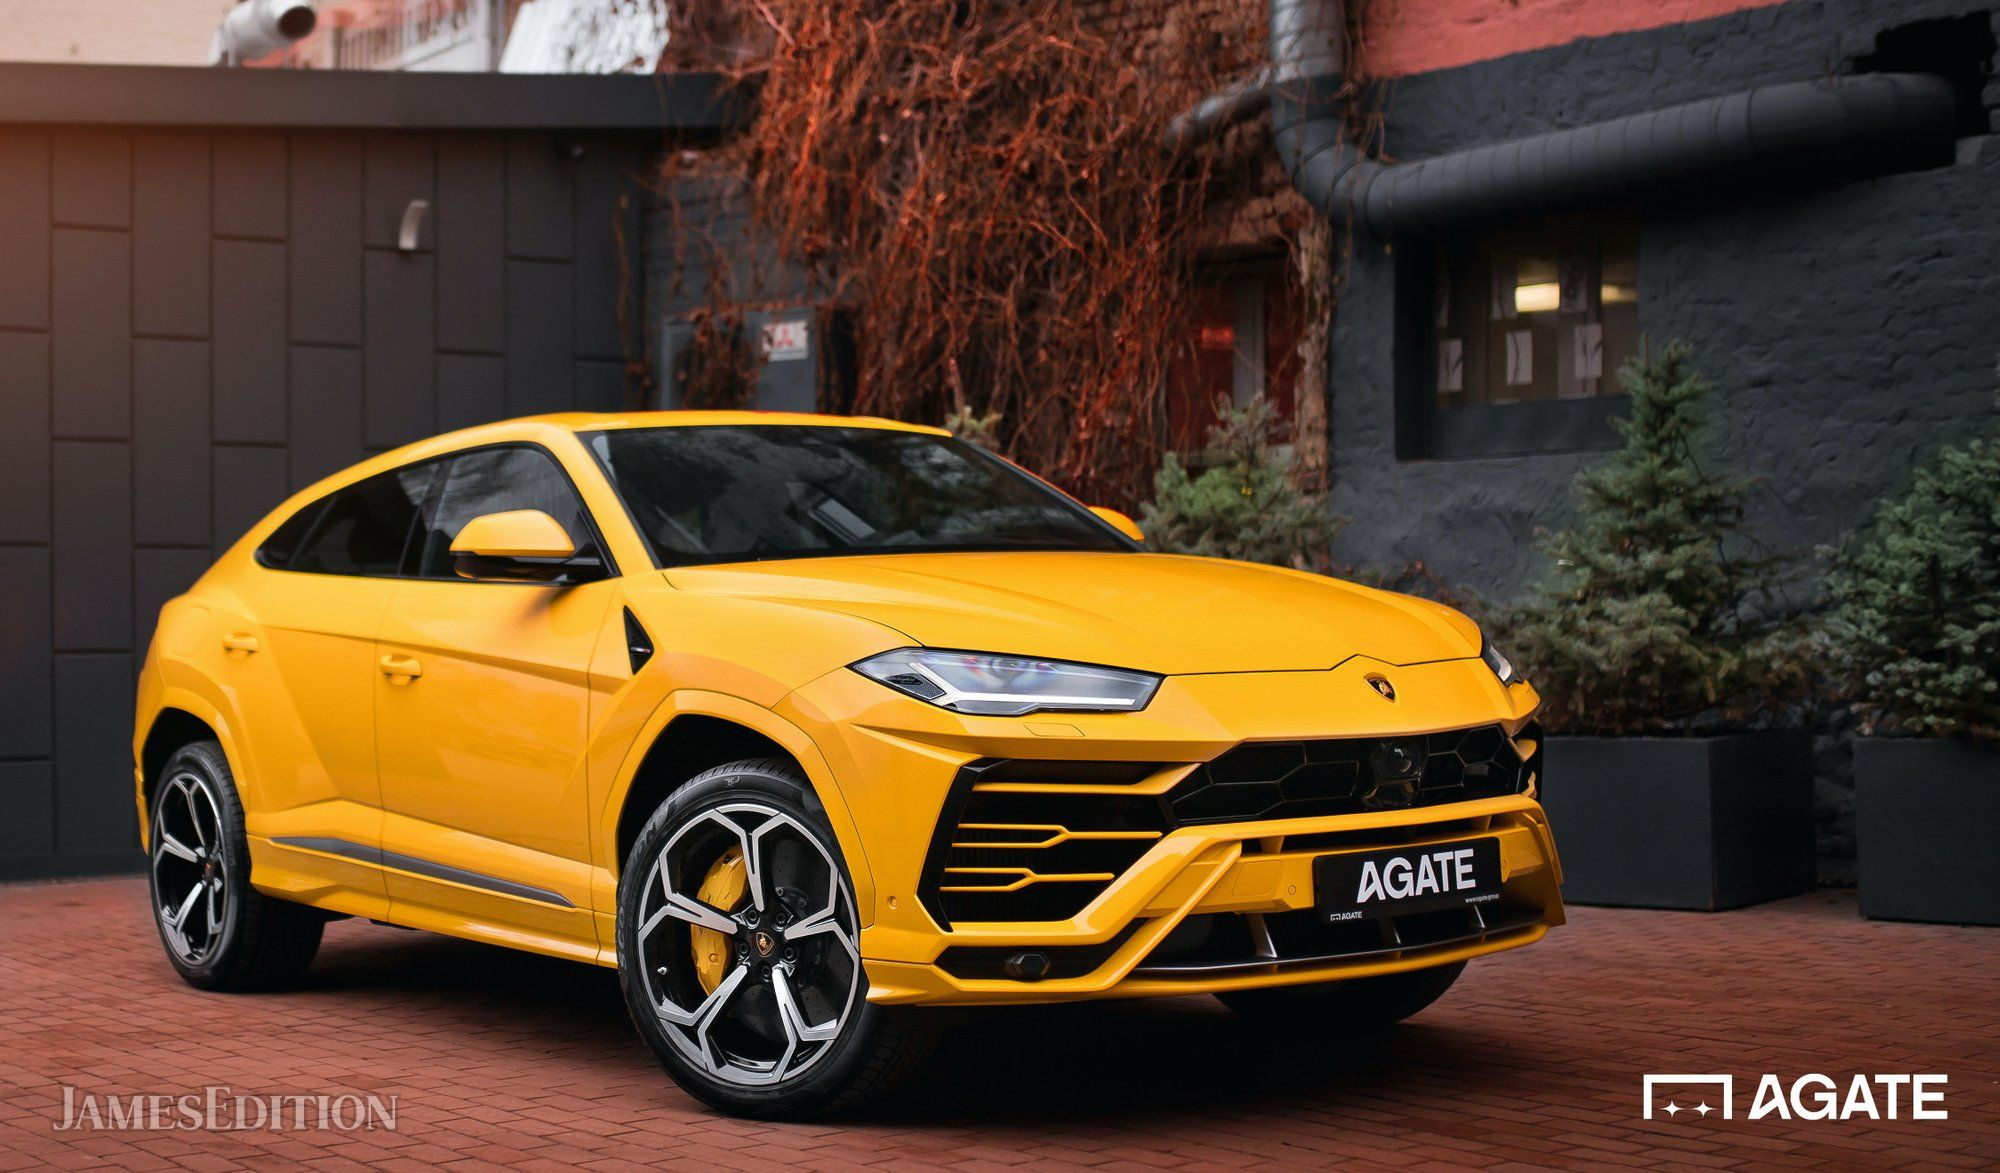 2020 lamborghini urus in moscow russian federation for sale 10893763 2020 lamborghini urus in moscow